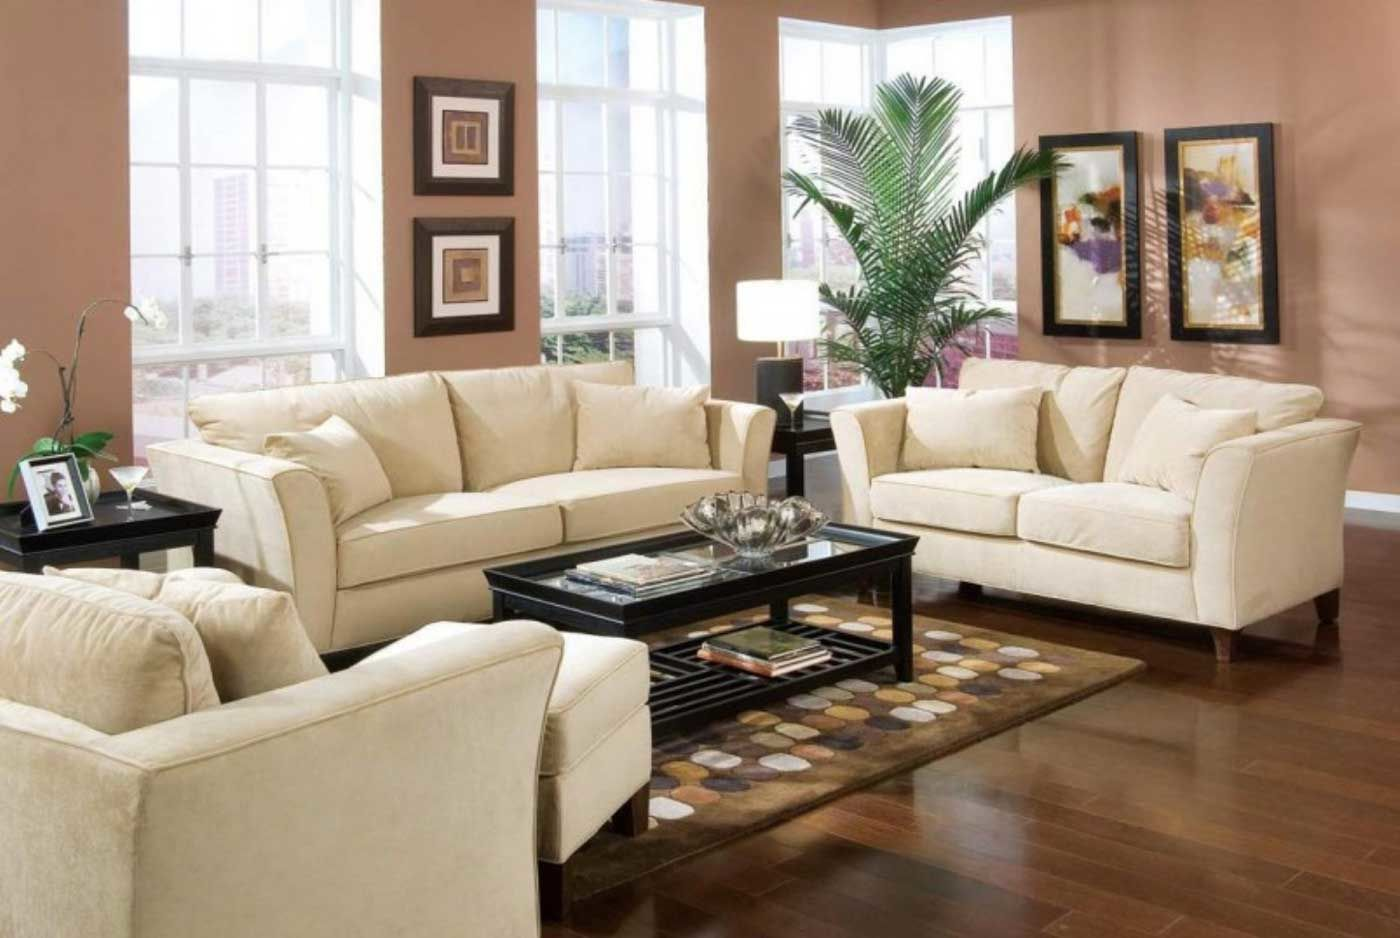 Image of: Small Living Room Designs Planning